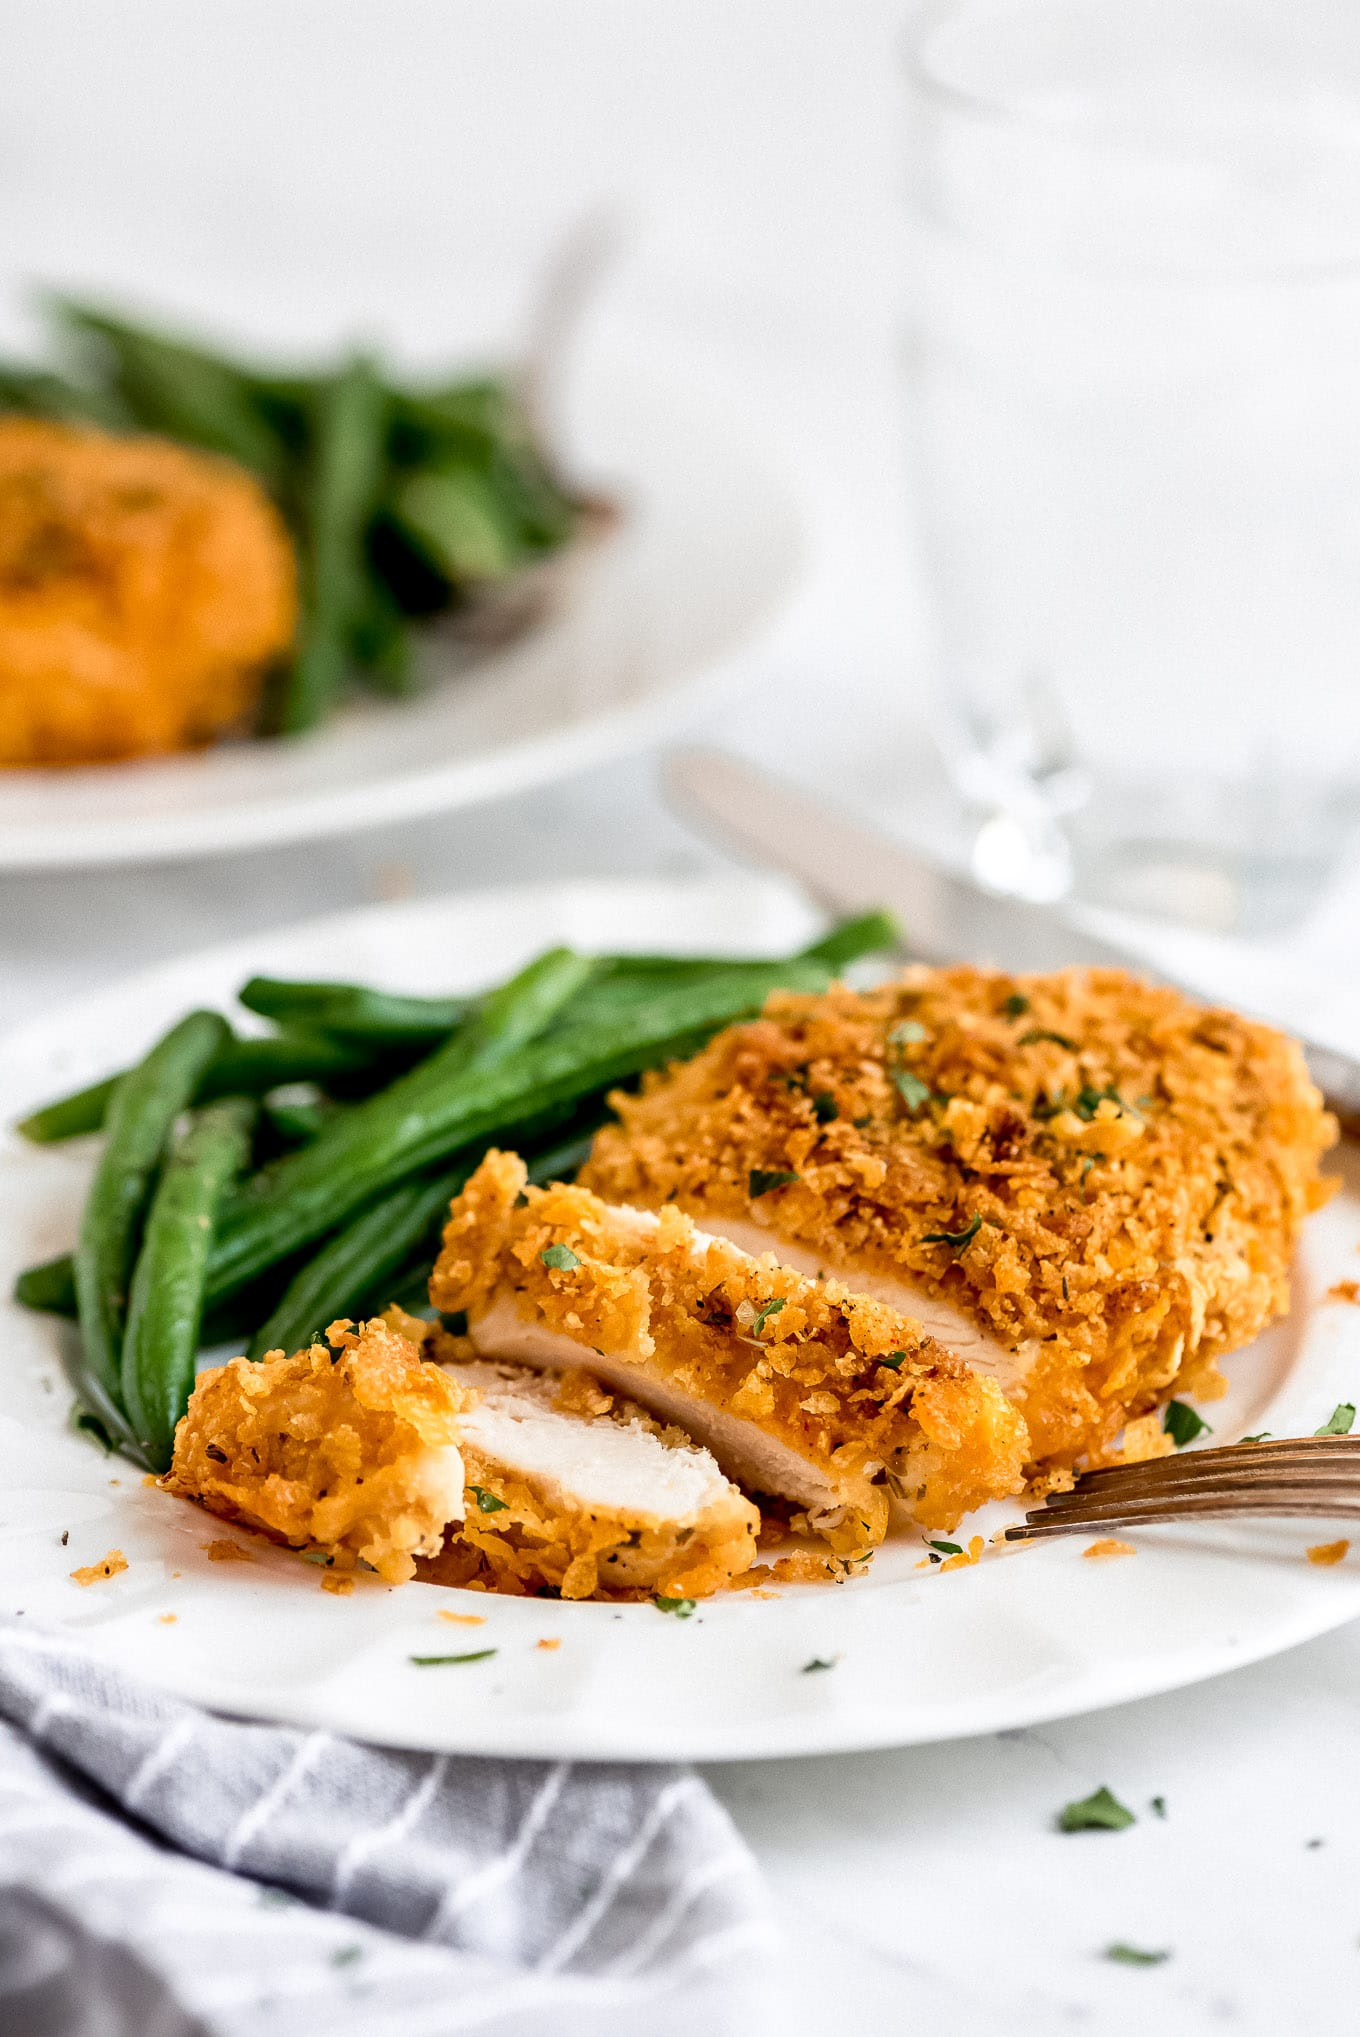 Close up of the crispy baked Cornflake Chicken on a plate with green beans.